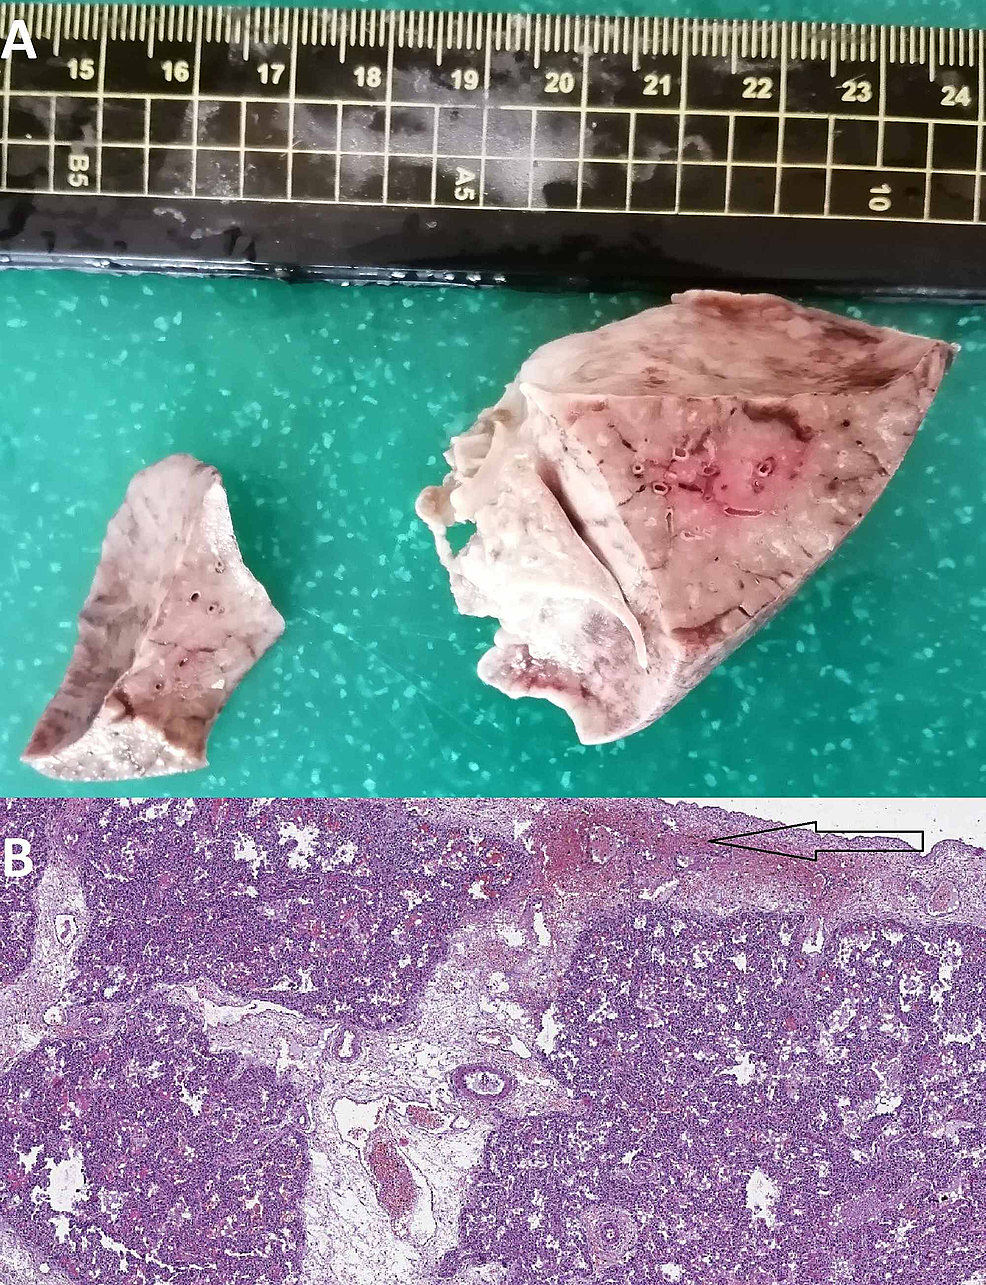 Gross-and-histological-findings-in-the-lung